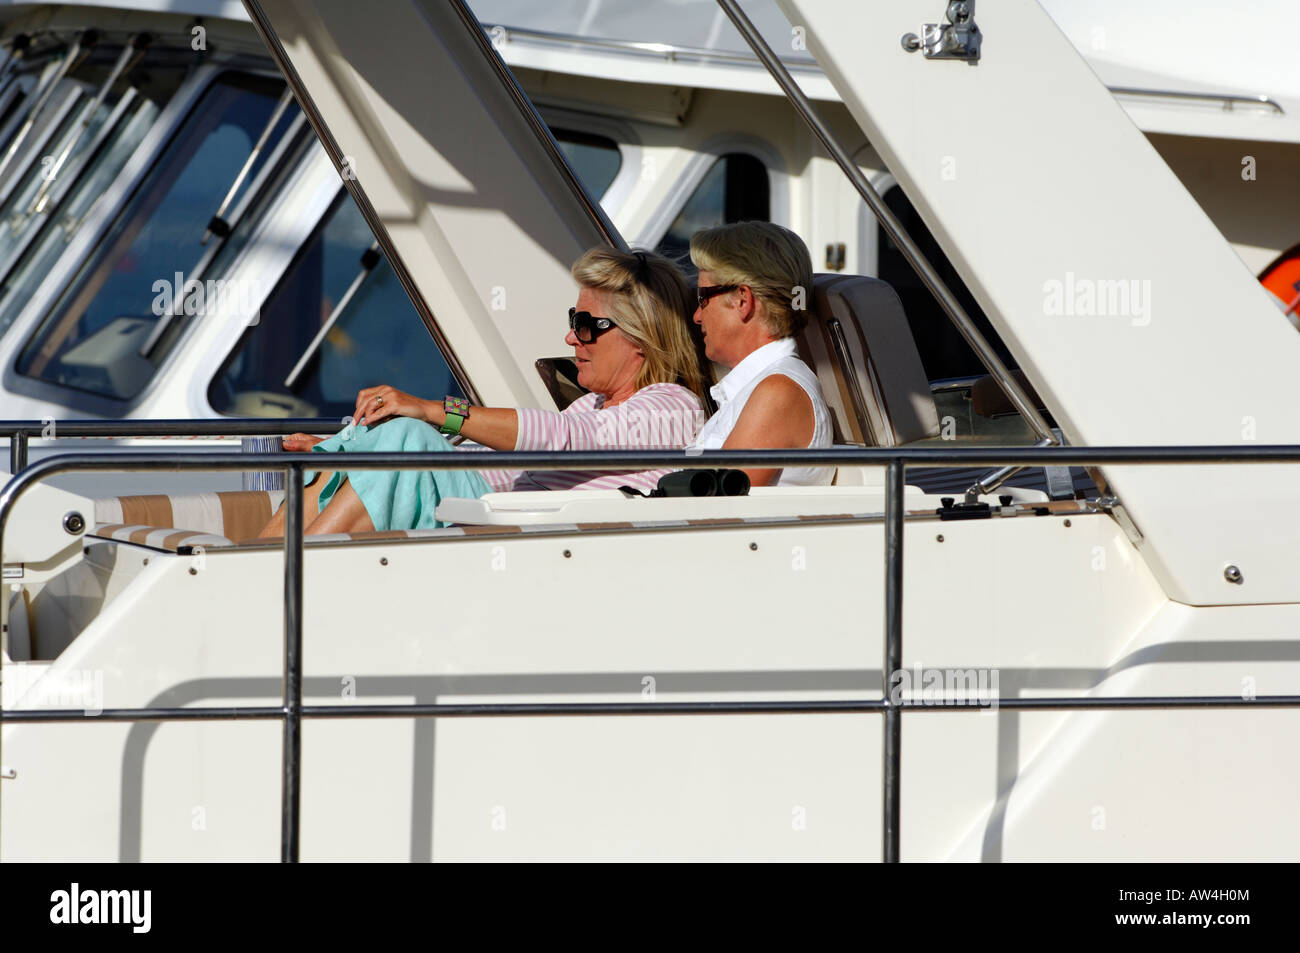 a woman and man lady and gentleman sat on a luxury motor yacht in the sunshine wearing sunglasses and relaxing during - Stock Image